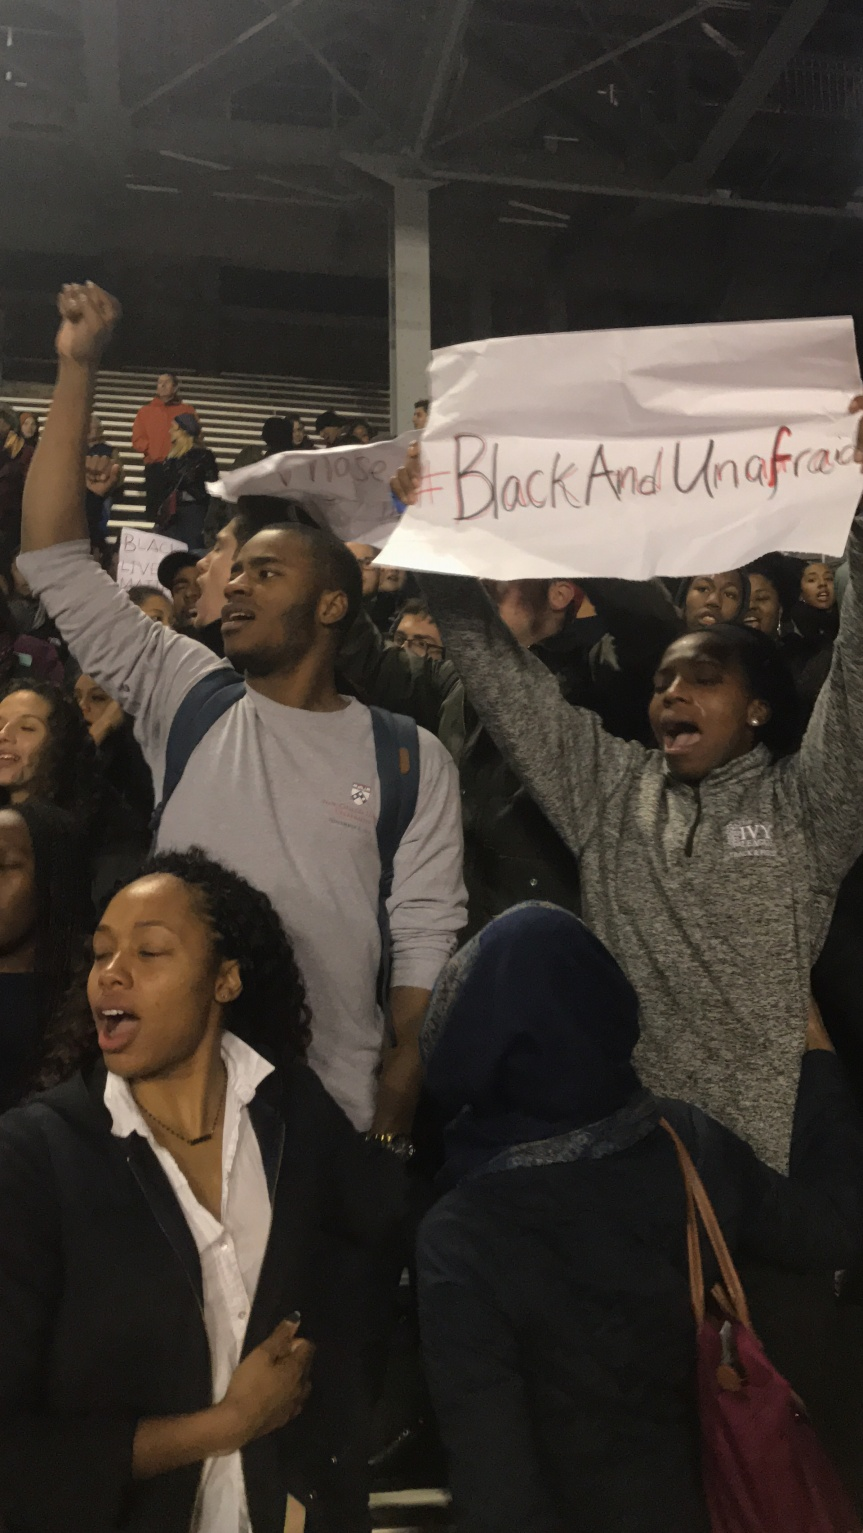 Penn Students Temporarily Block Entrance to Football Game in Response to Racist GroupMe